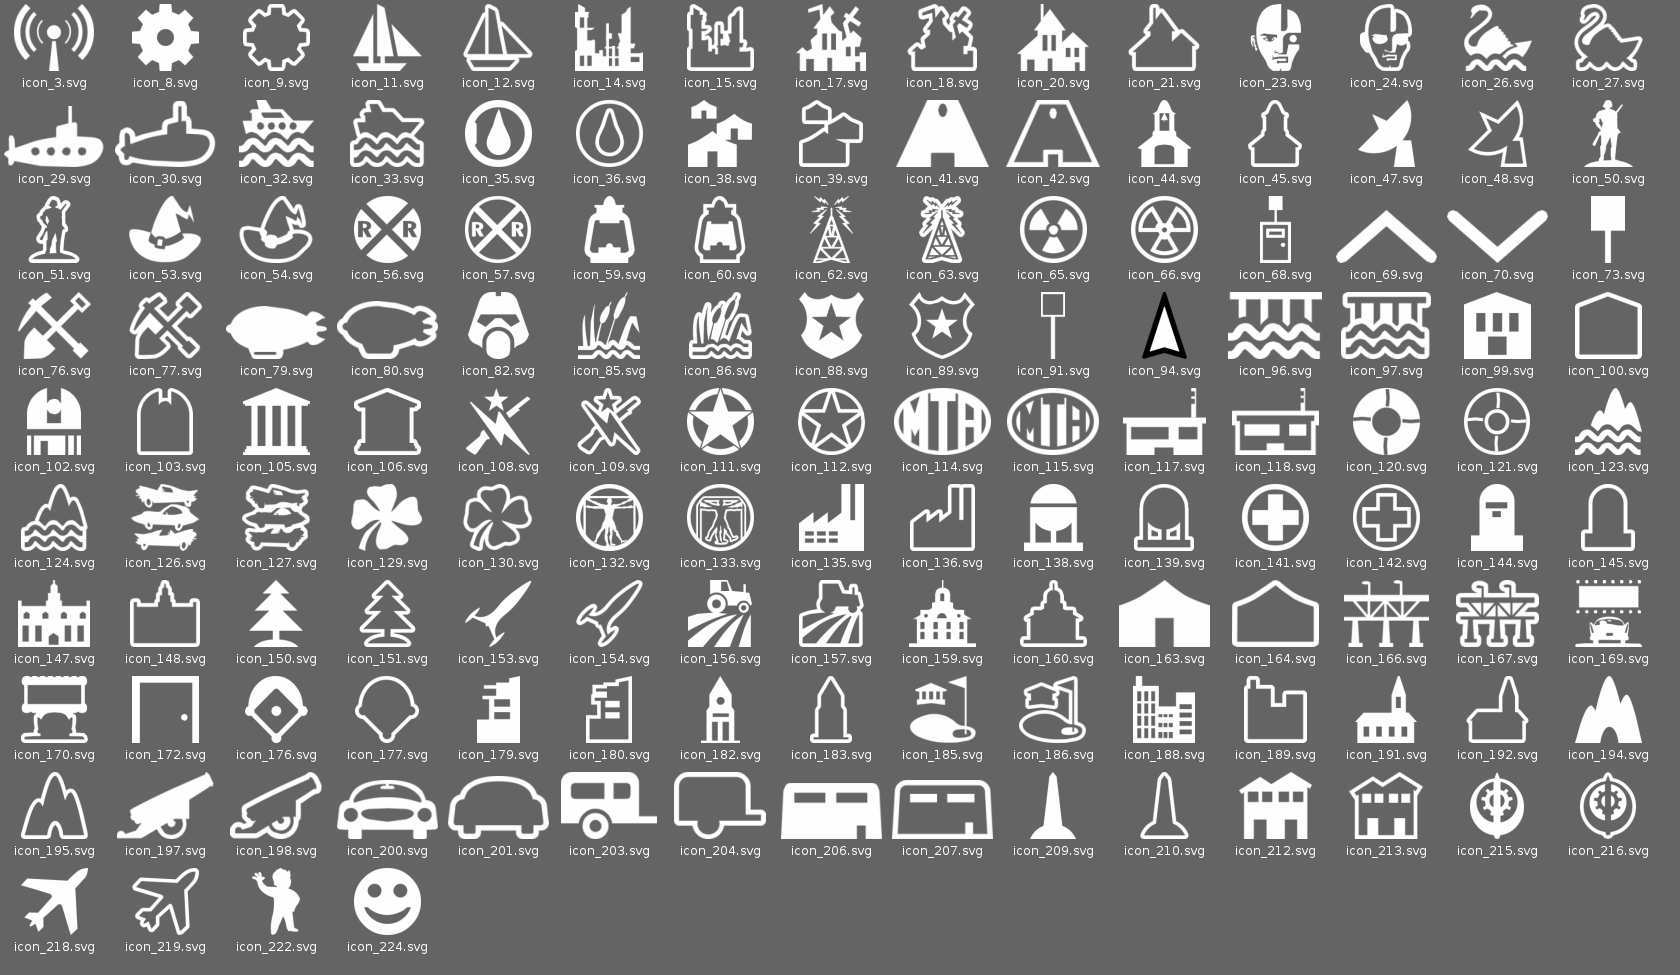 Pin By Jane Malins On Pras Peninsula Icon Meaning Fallout Art Meant To Be